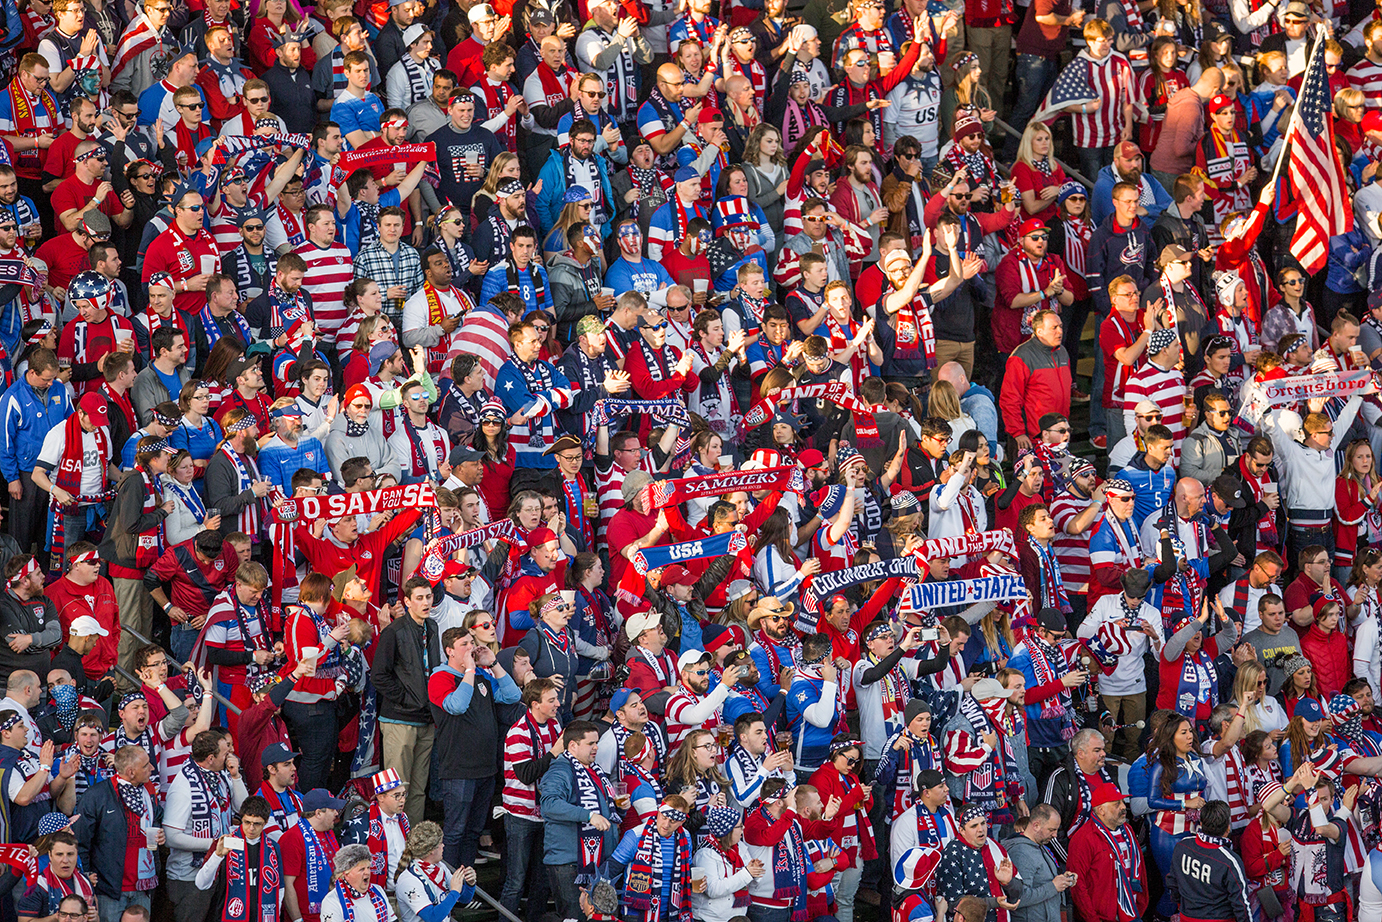 COLUMBUS, OHIO — A sea of red, white and blue filled most of MAPFRE Stadium where 20, 624 people came to watch the World Cup qualifying match between the U.S. Men's National Team and Guatemala Men's National Team in Columbus, Ohio on Mar. 29, 2016. The U.S. defeated Guatemala 4-0.